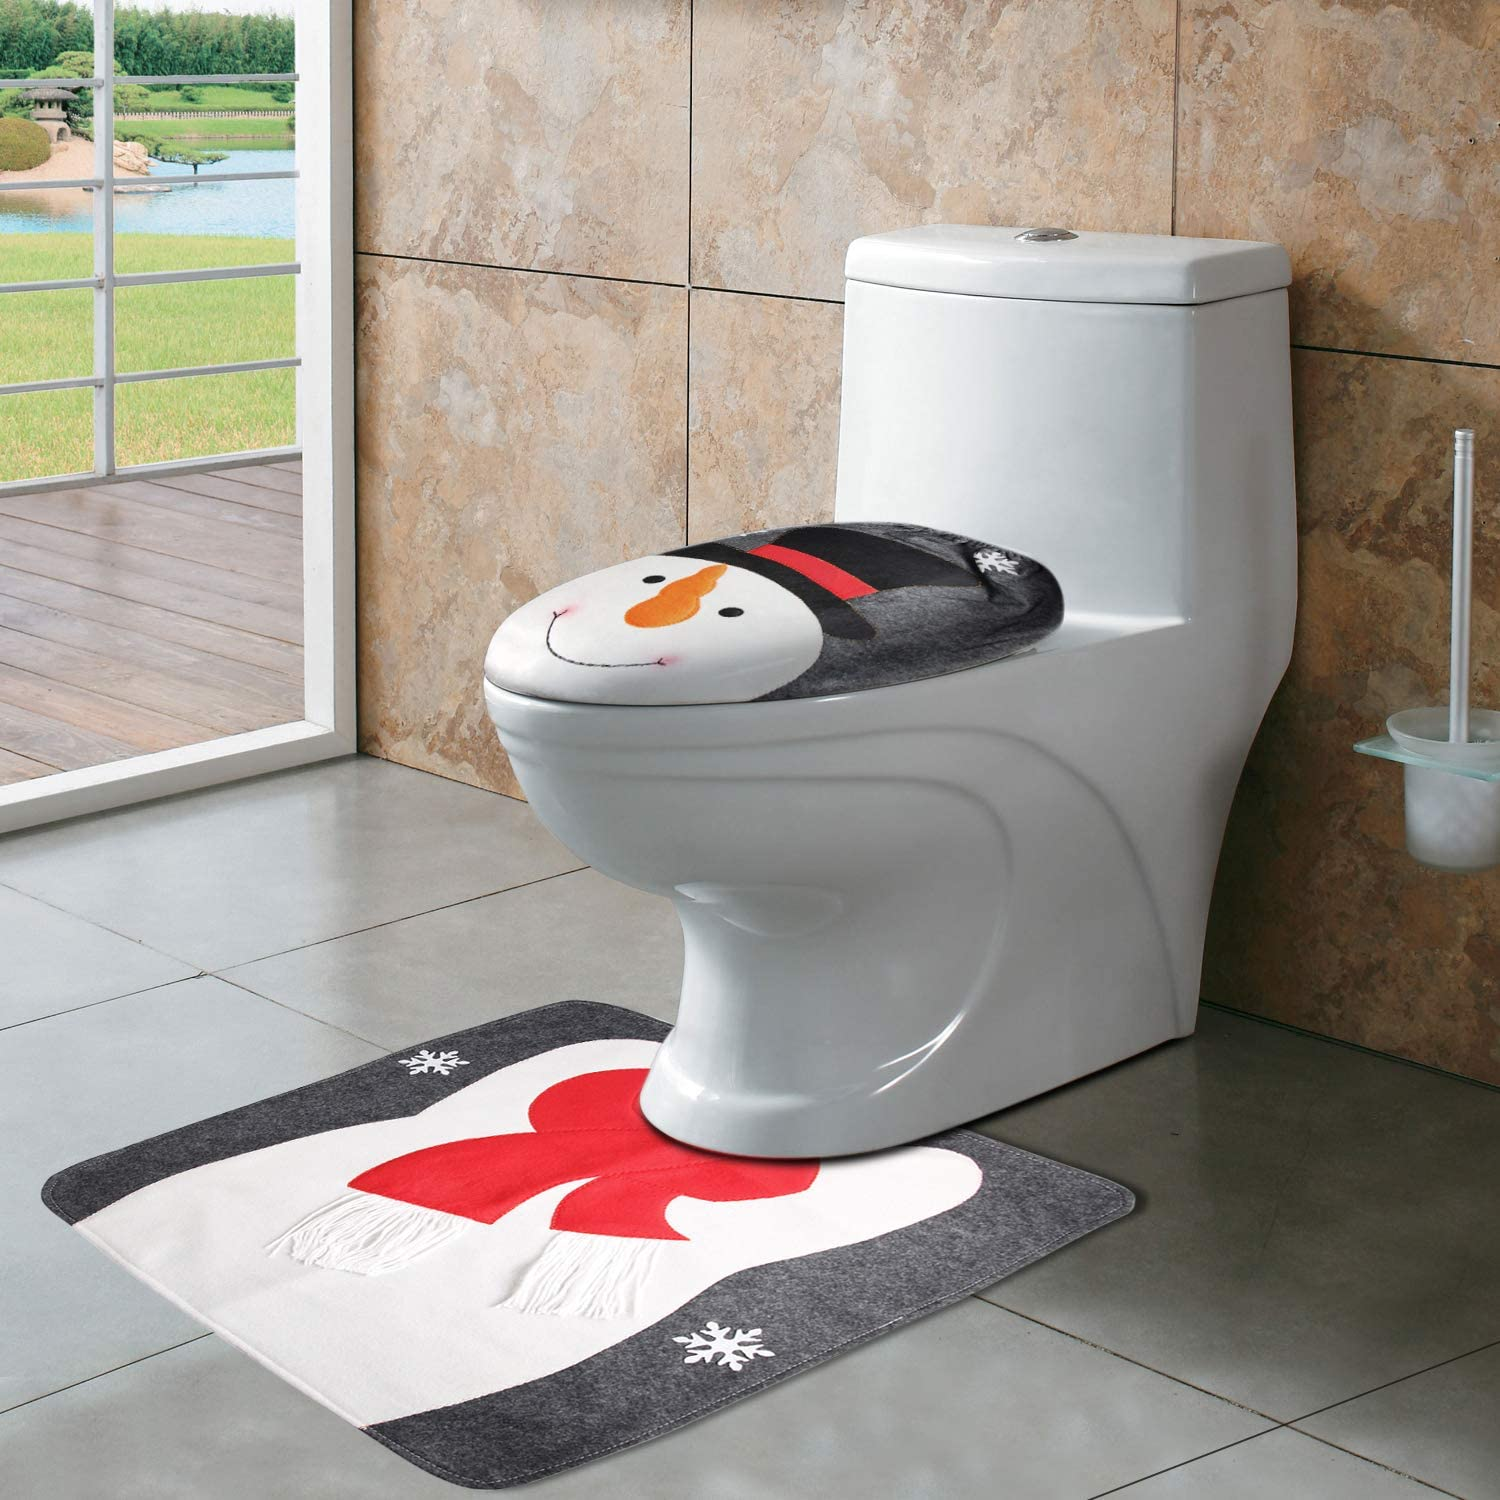 Depointer CrtWorld Rug Seat Christmas Bathroom Sets(Snowman Toilet Cover)